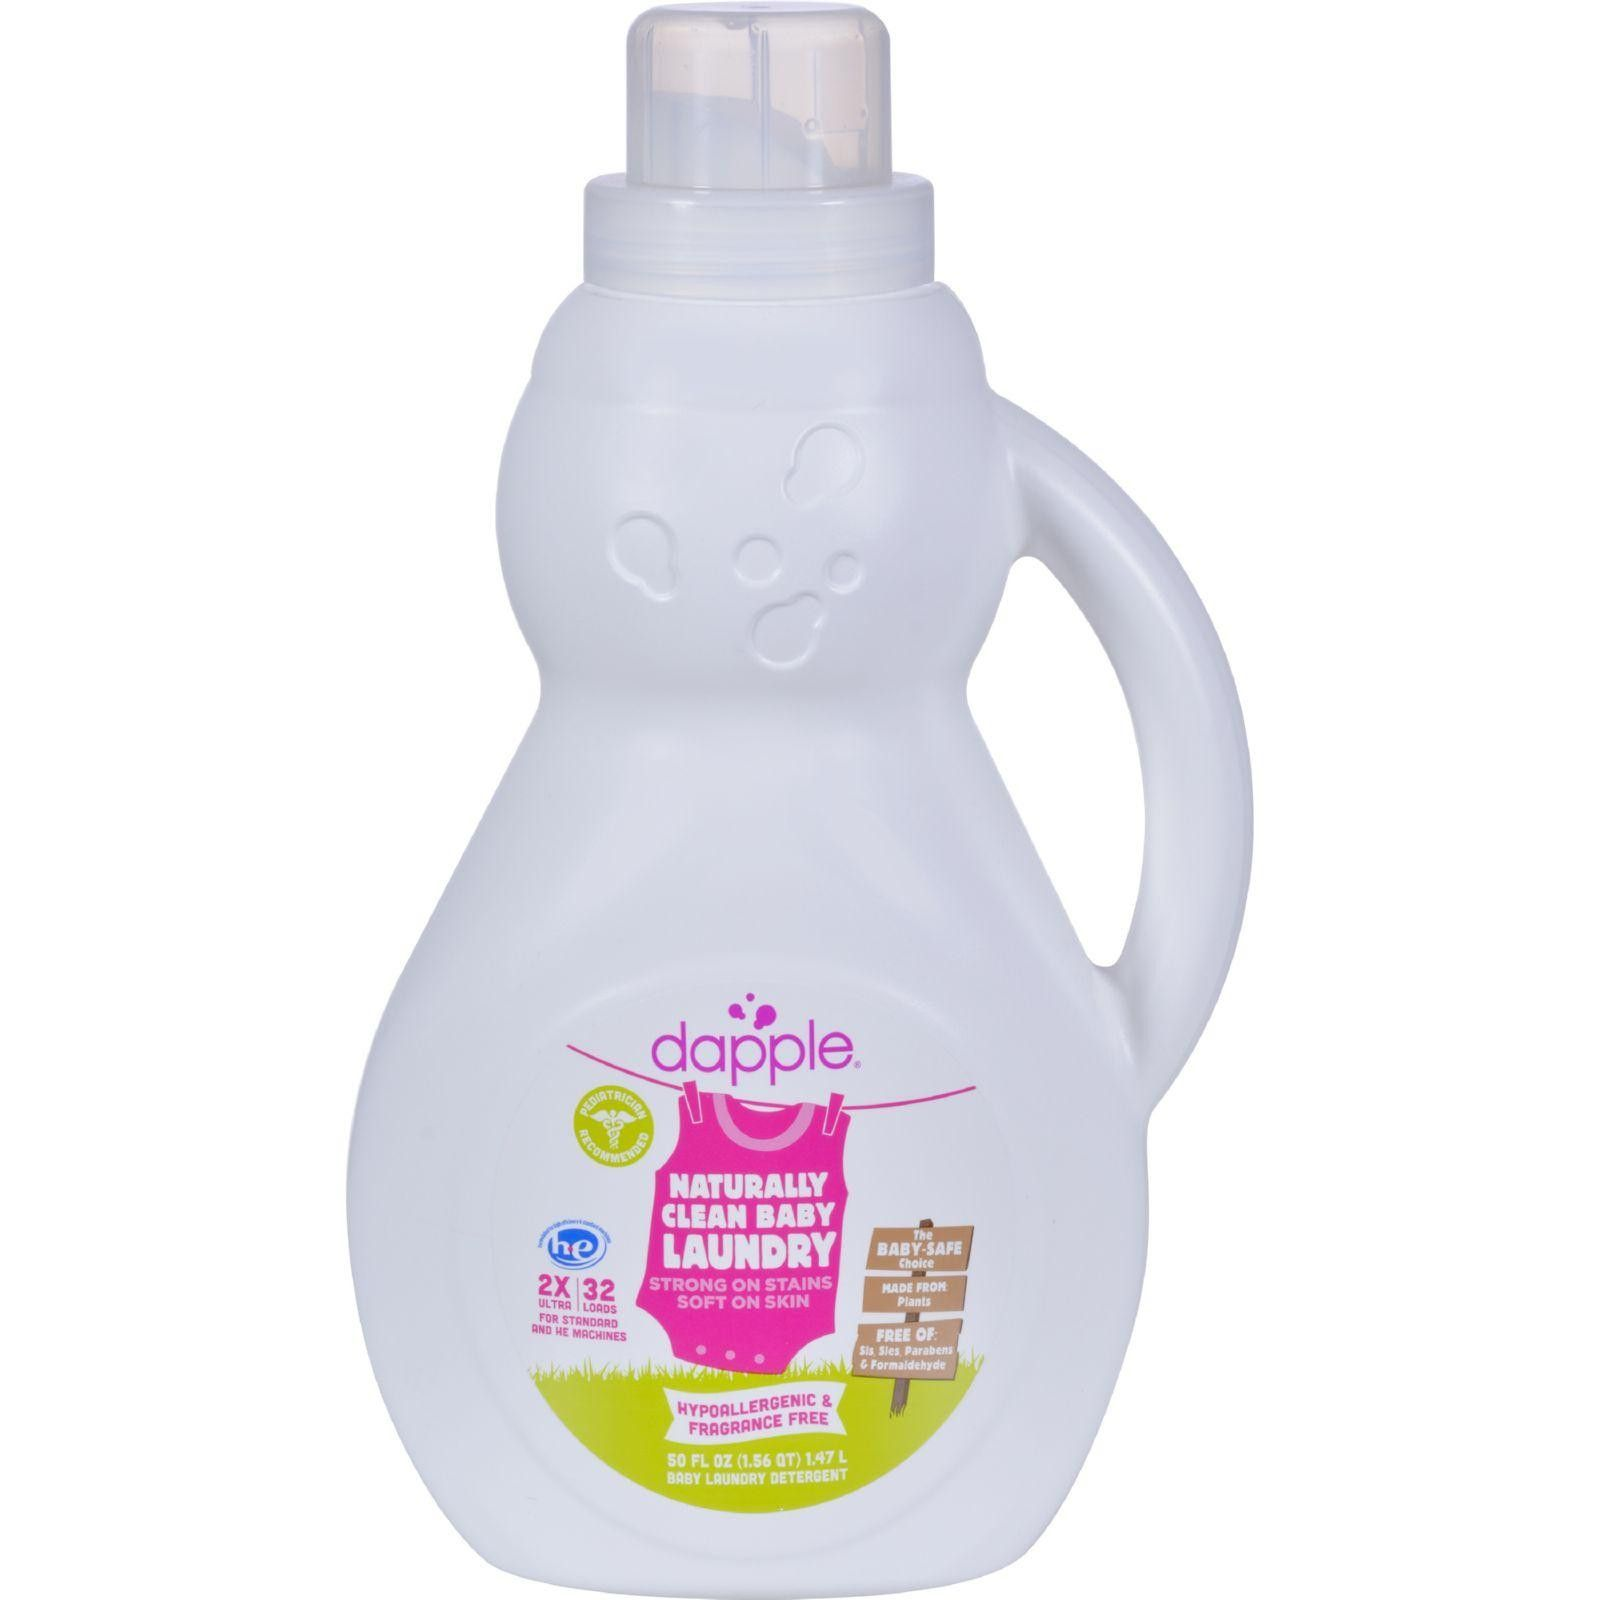 Dapple Fragrance Free Baby Laundry Detergent Is Made With Ultra Mild Ingredients And Perfect For Newborns Baby Laundry Detergent Baby Laundry Laundry Detergent